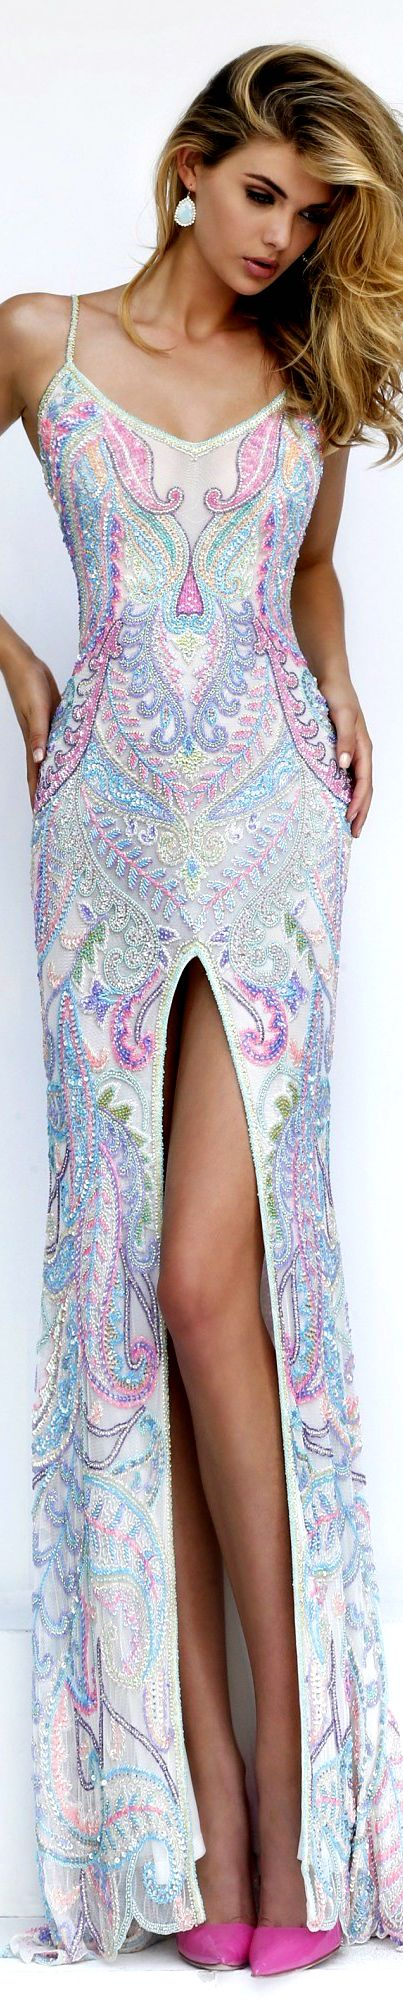 Sherri Hill women fashion outfit clothing style apparel @roressclothes closet ideas